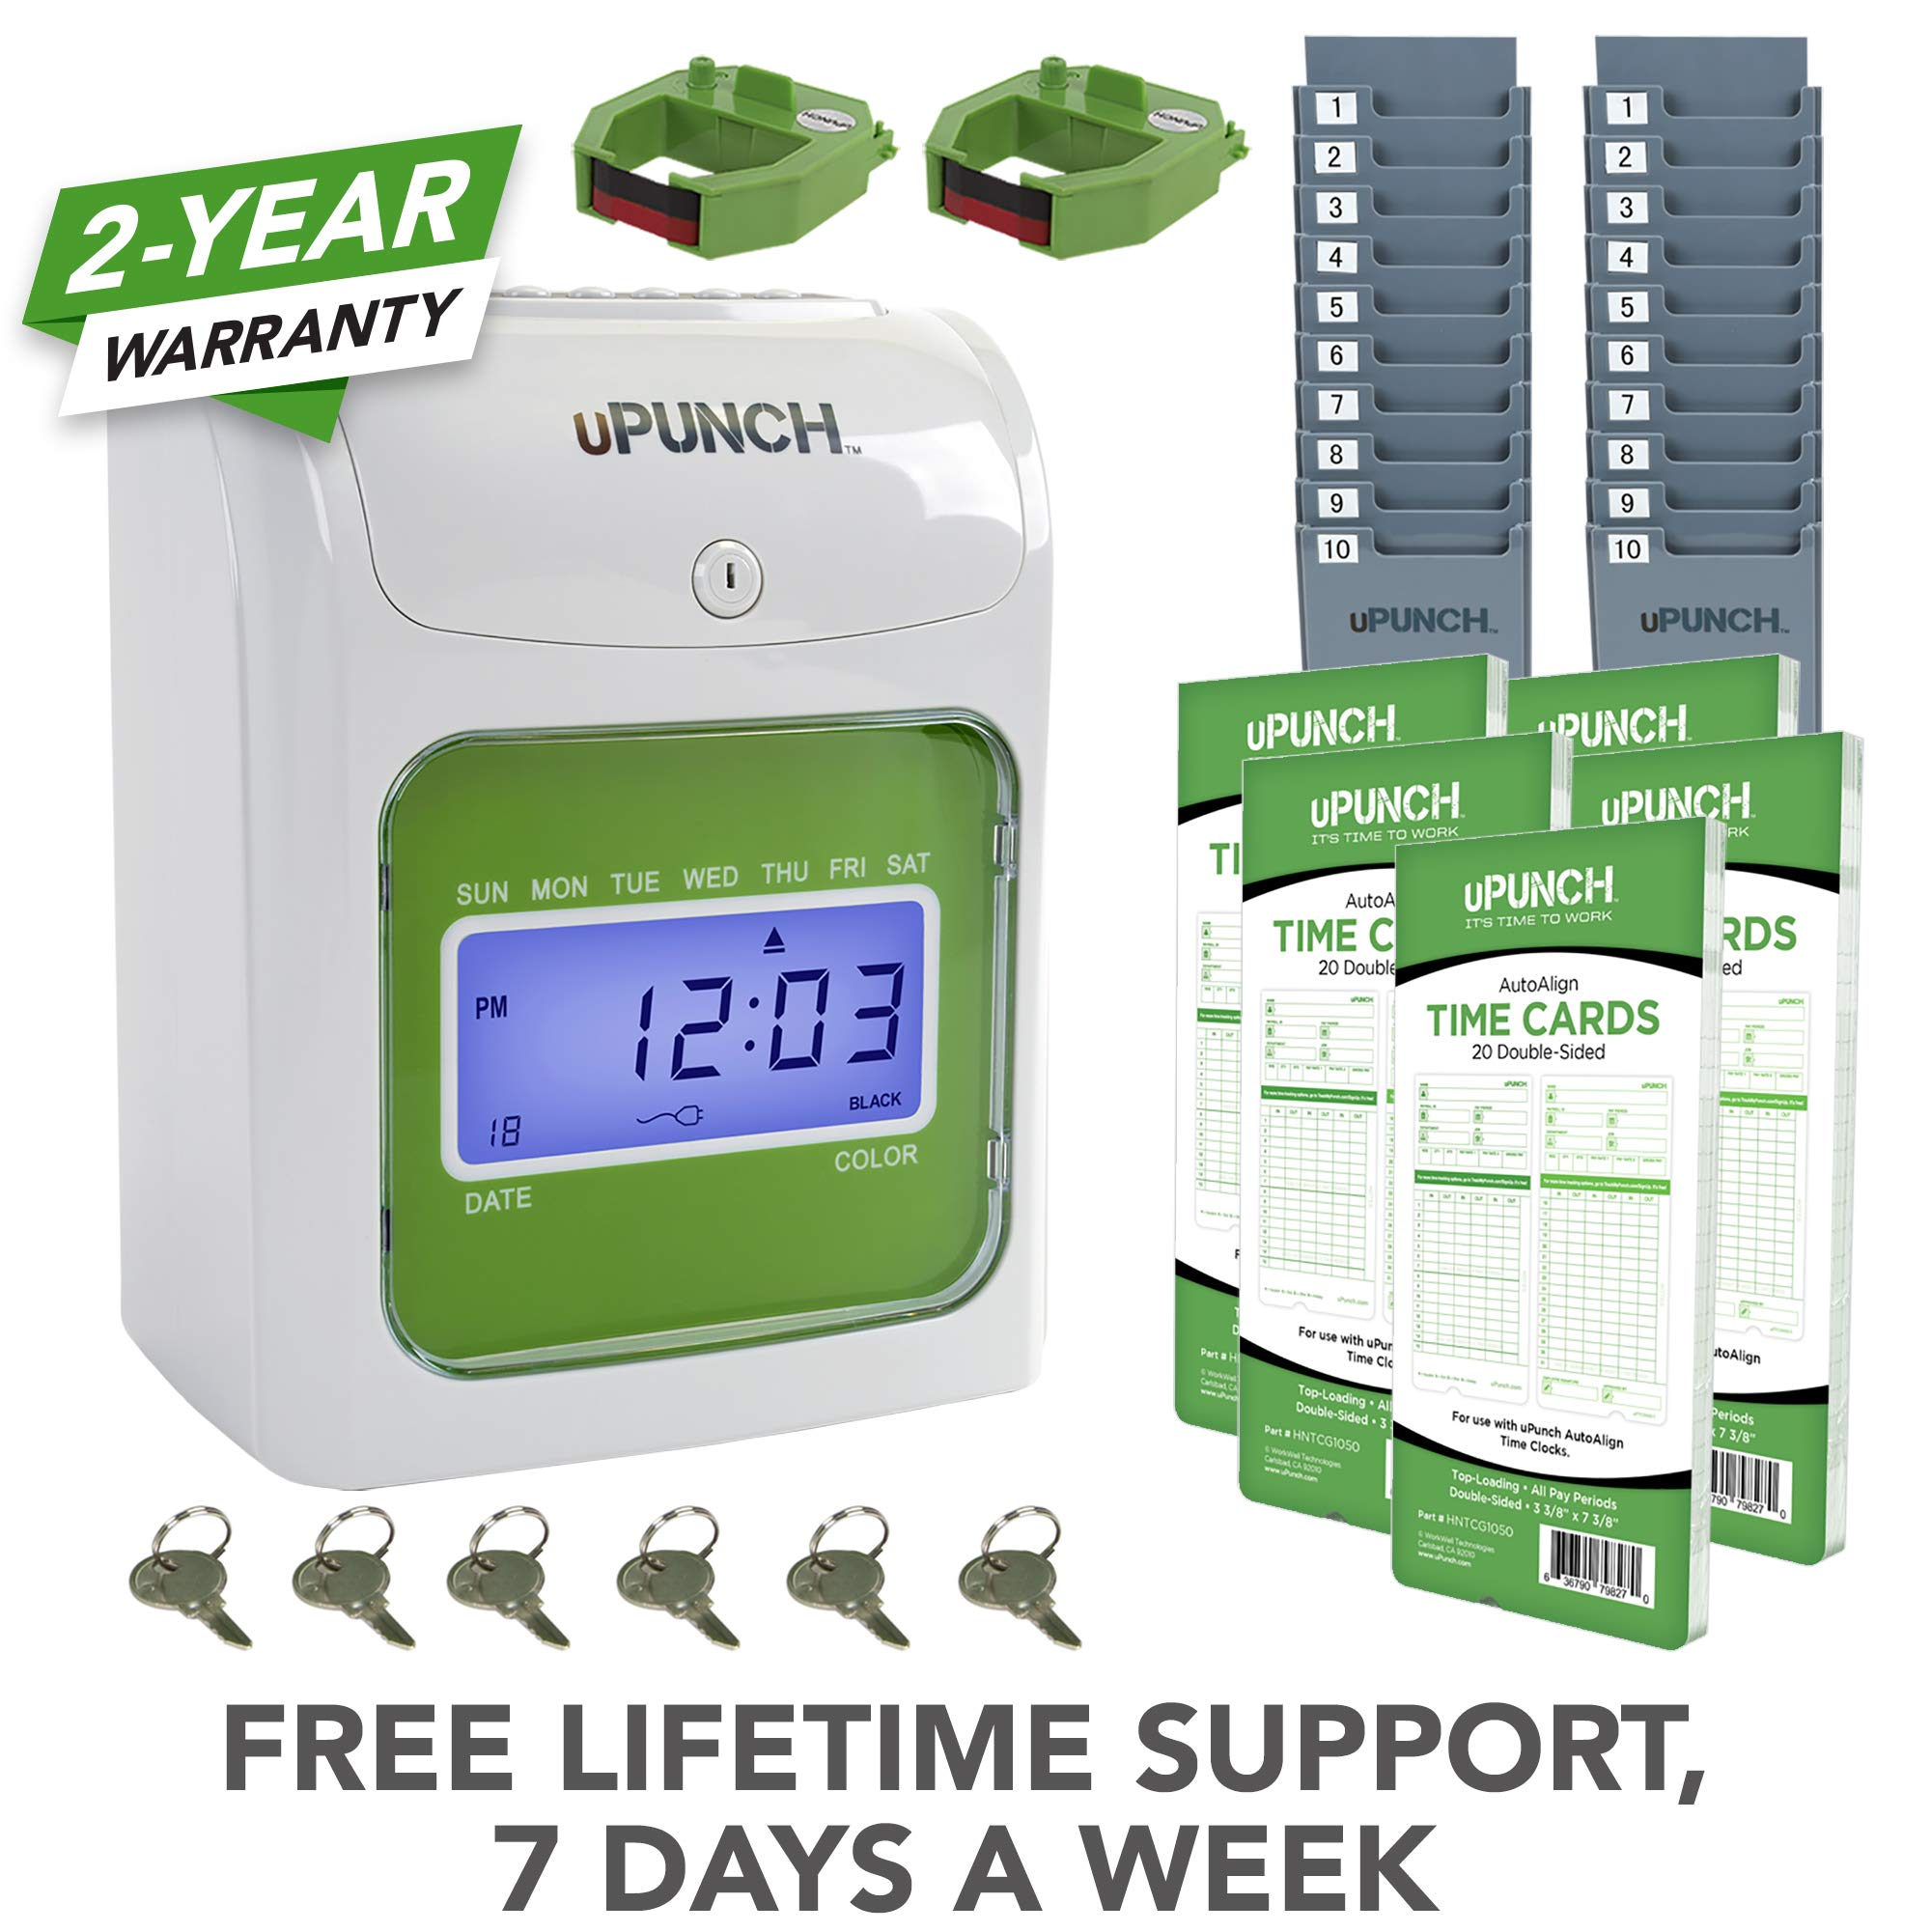 uPunch Time Clock Bundle with 100 Cards, 2 Ribbons, 2 Time Card Racks, & 6 Keys (HN3500) by uPunch